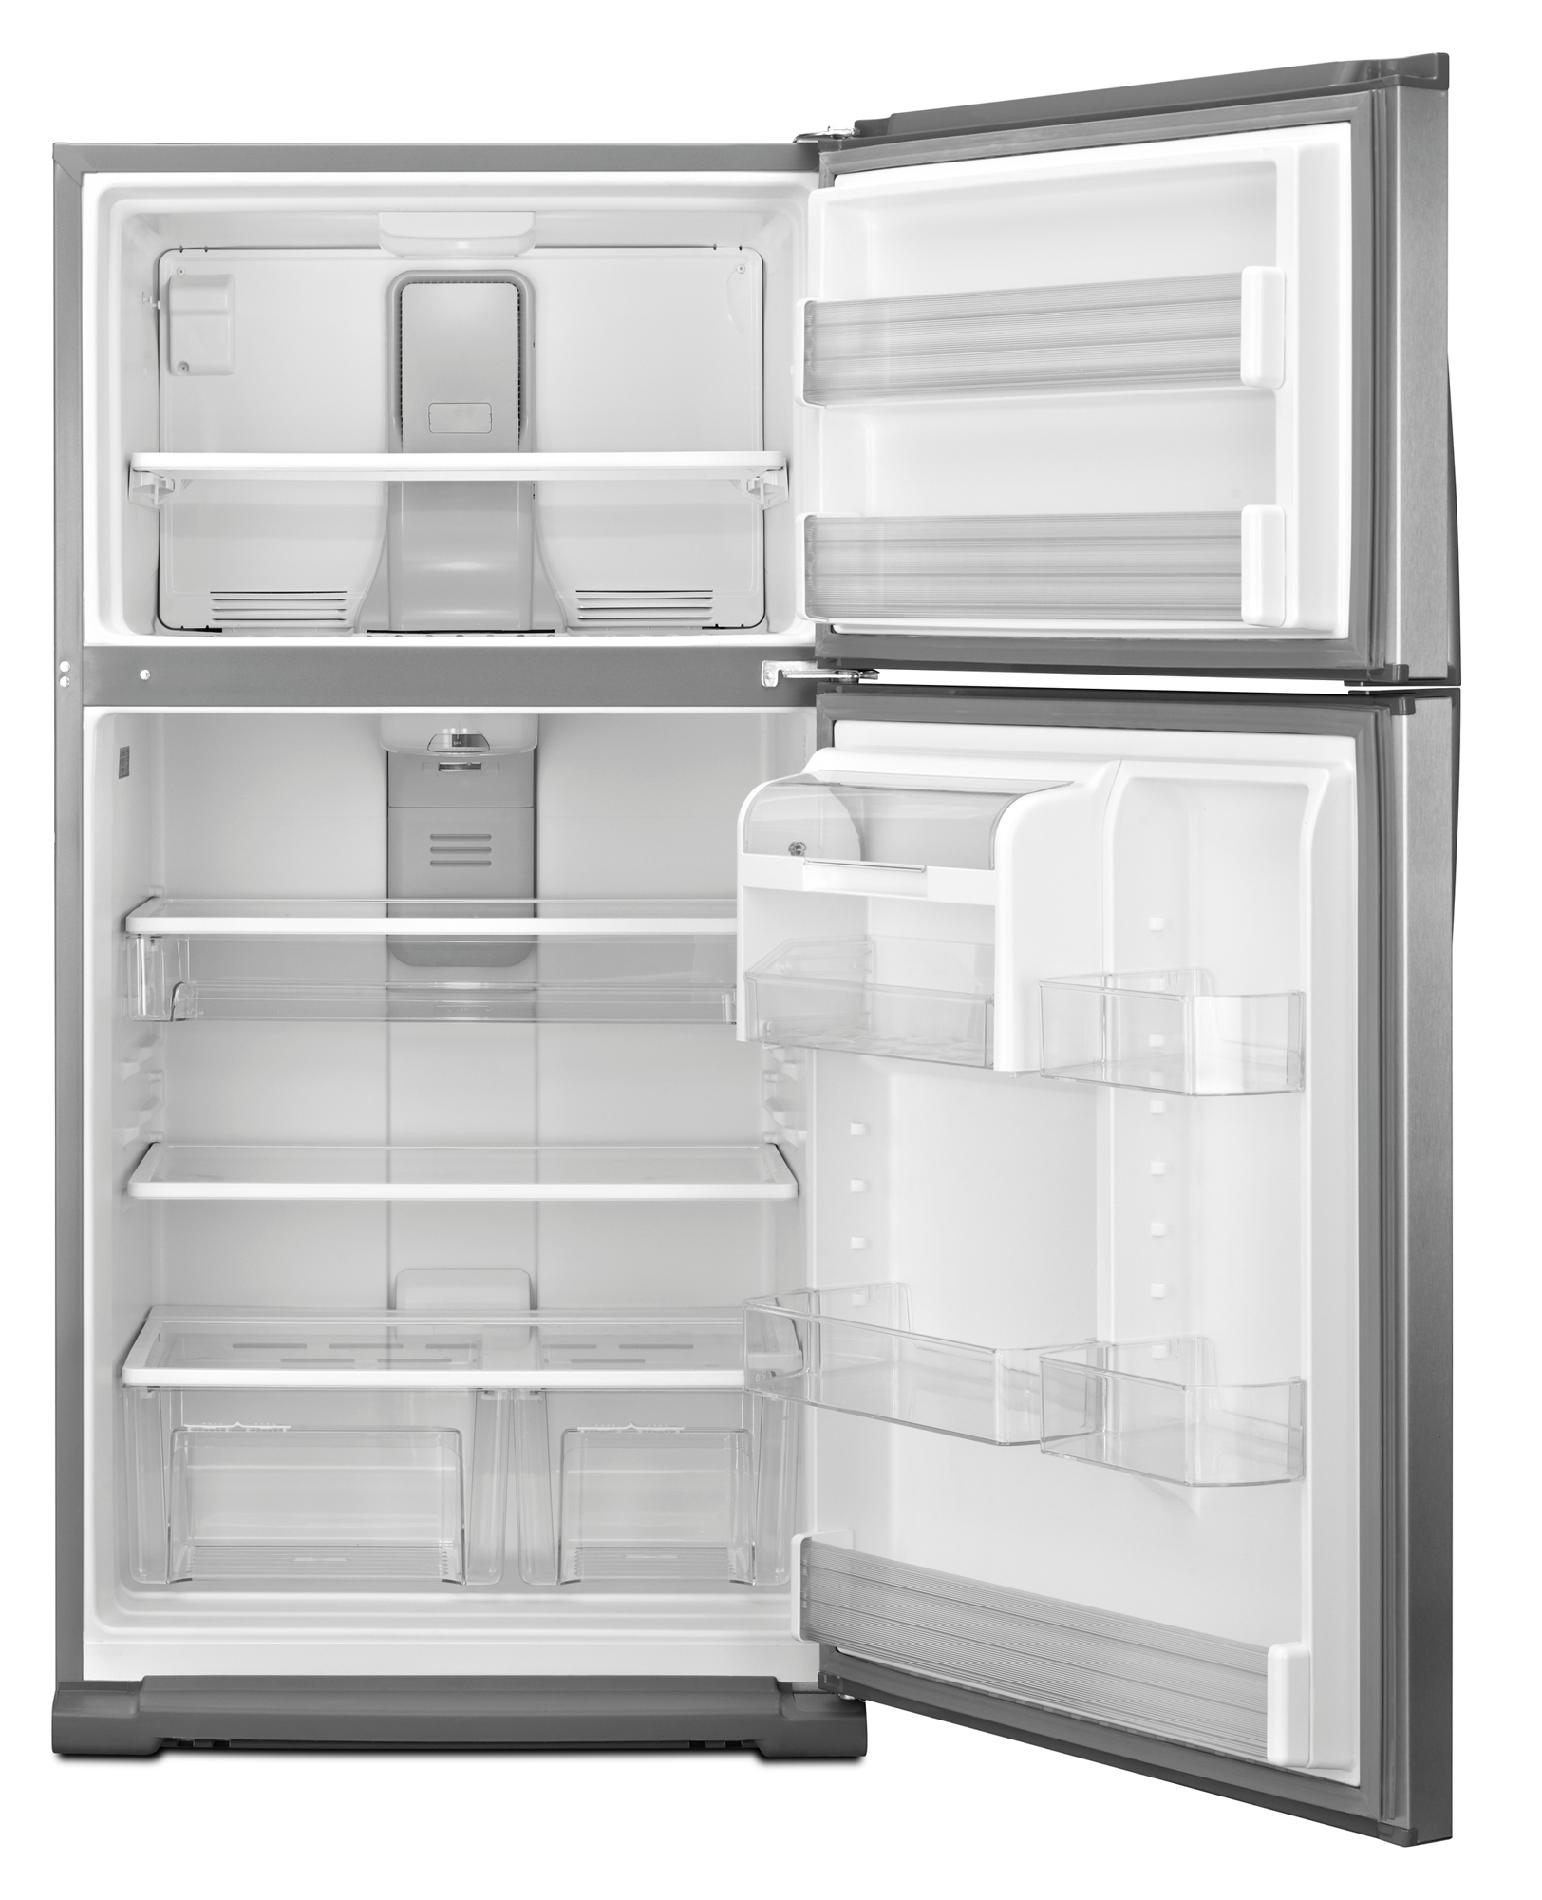 Whirlpool 21.0 cu. ft. Top-Freezer Refrigerator w/ Smooth, Contoured Doors - Metallic